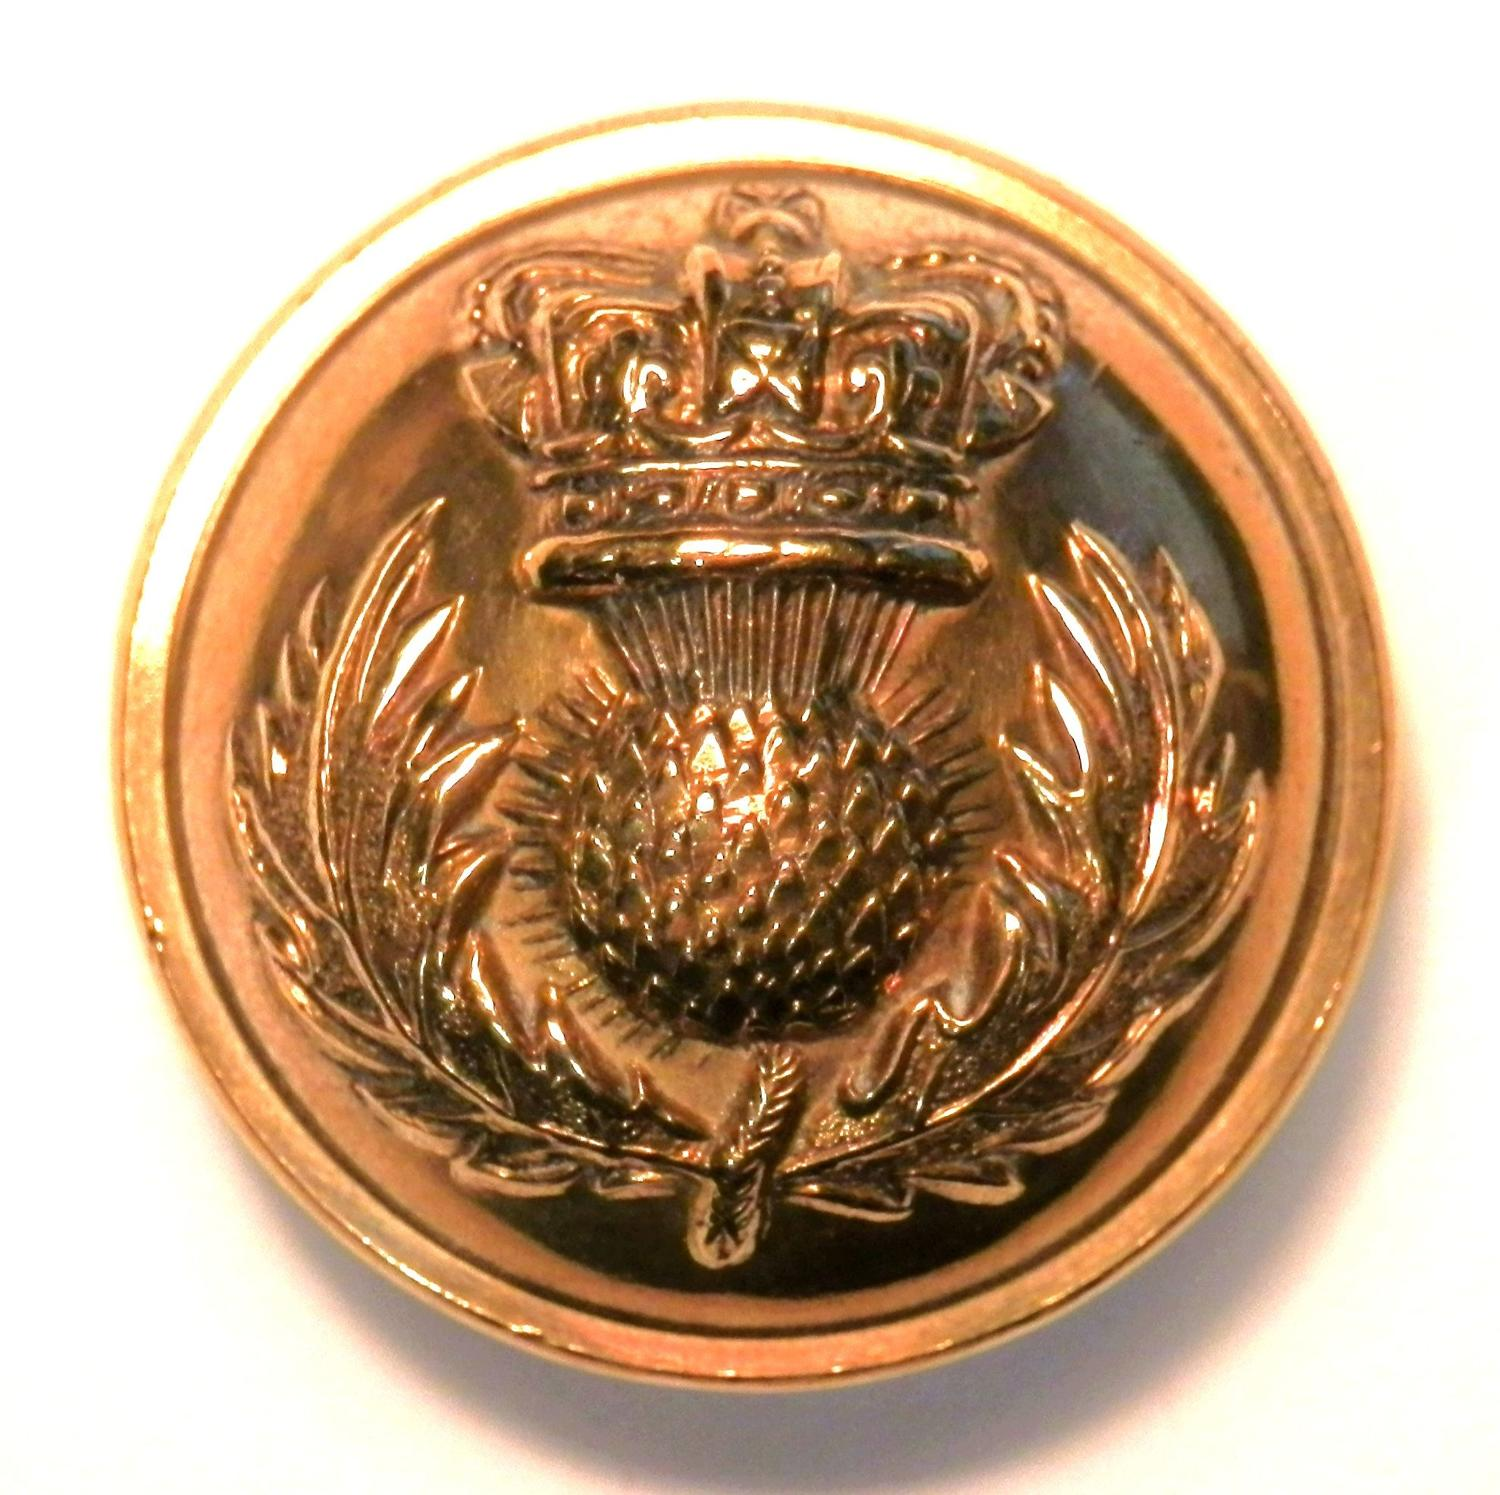 The Royal Scots Fusiliers Button